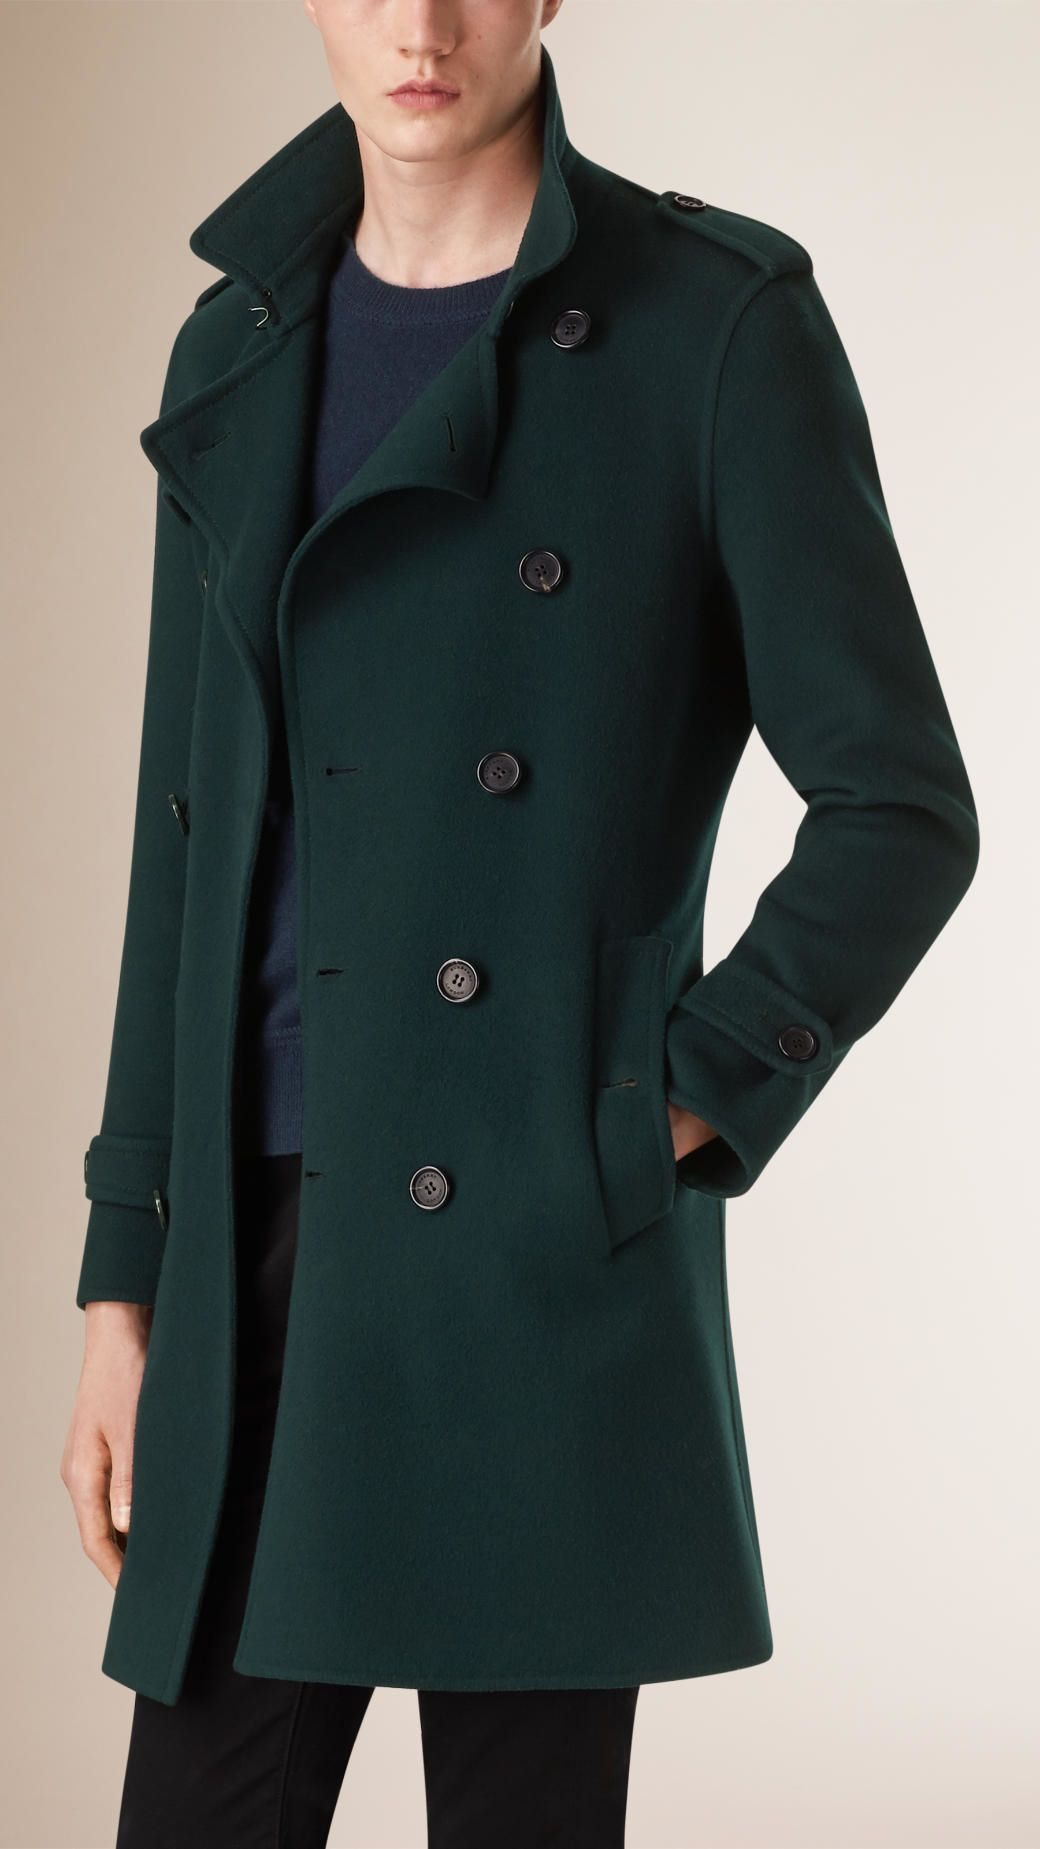 2ec926229fd6 Burberry Wool Cashmere Blend Trench Coat in Green for Men (deep bottle  green)